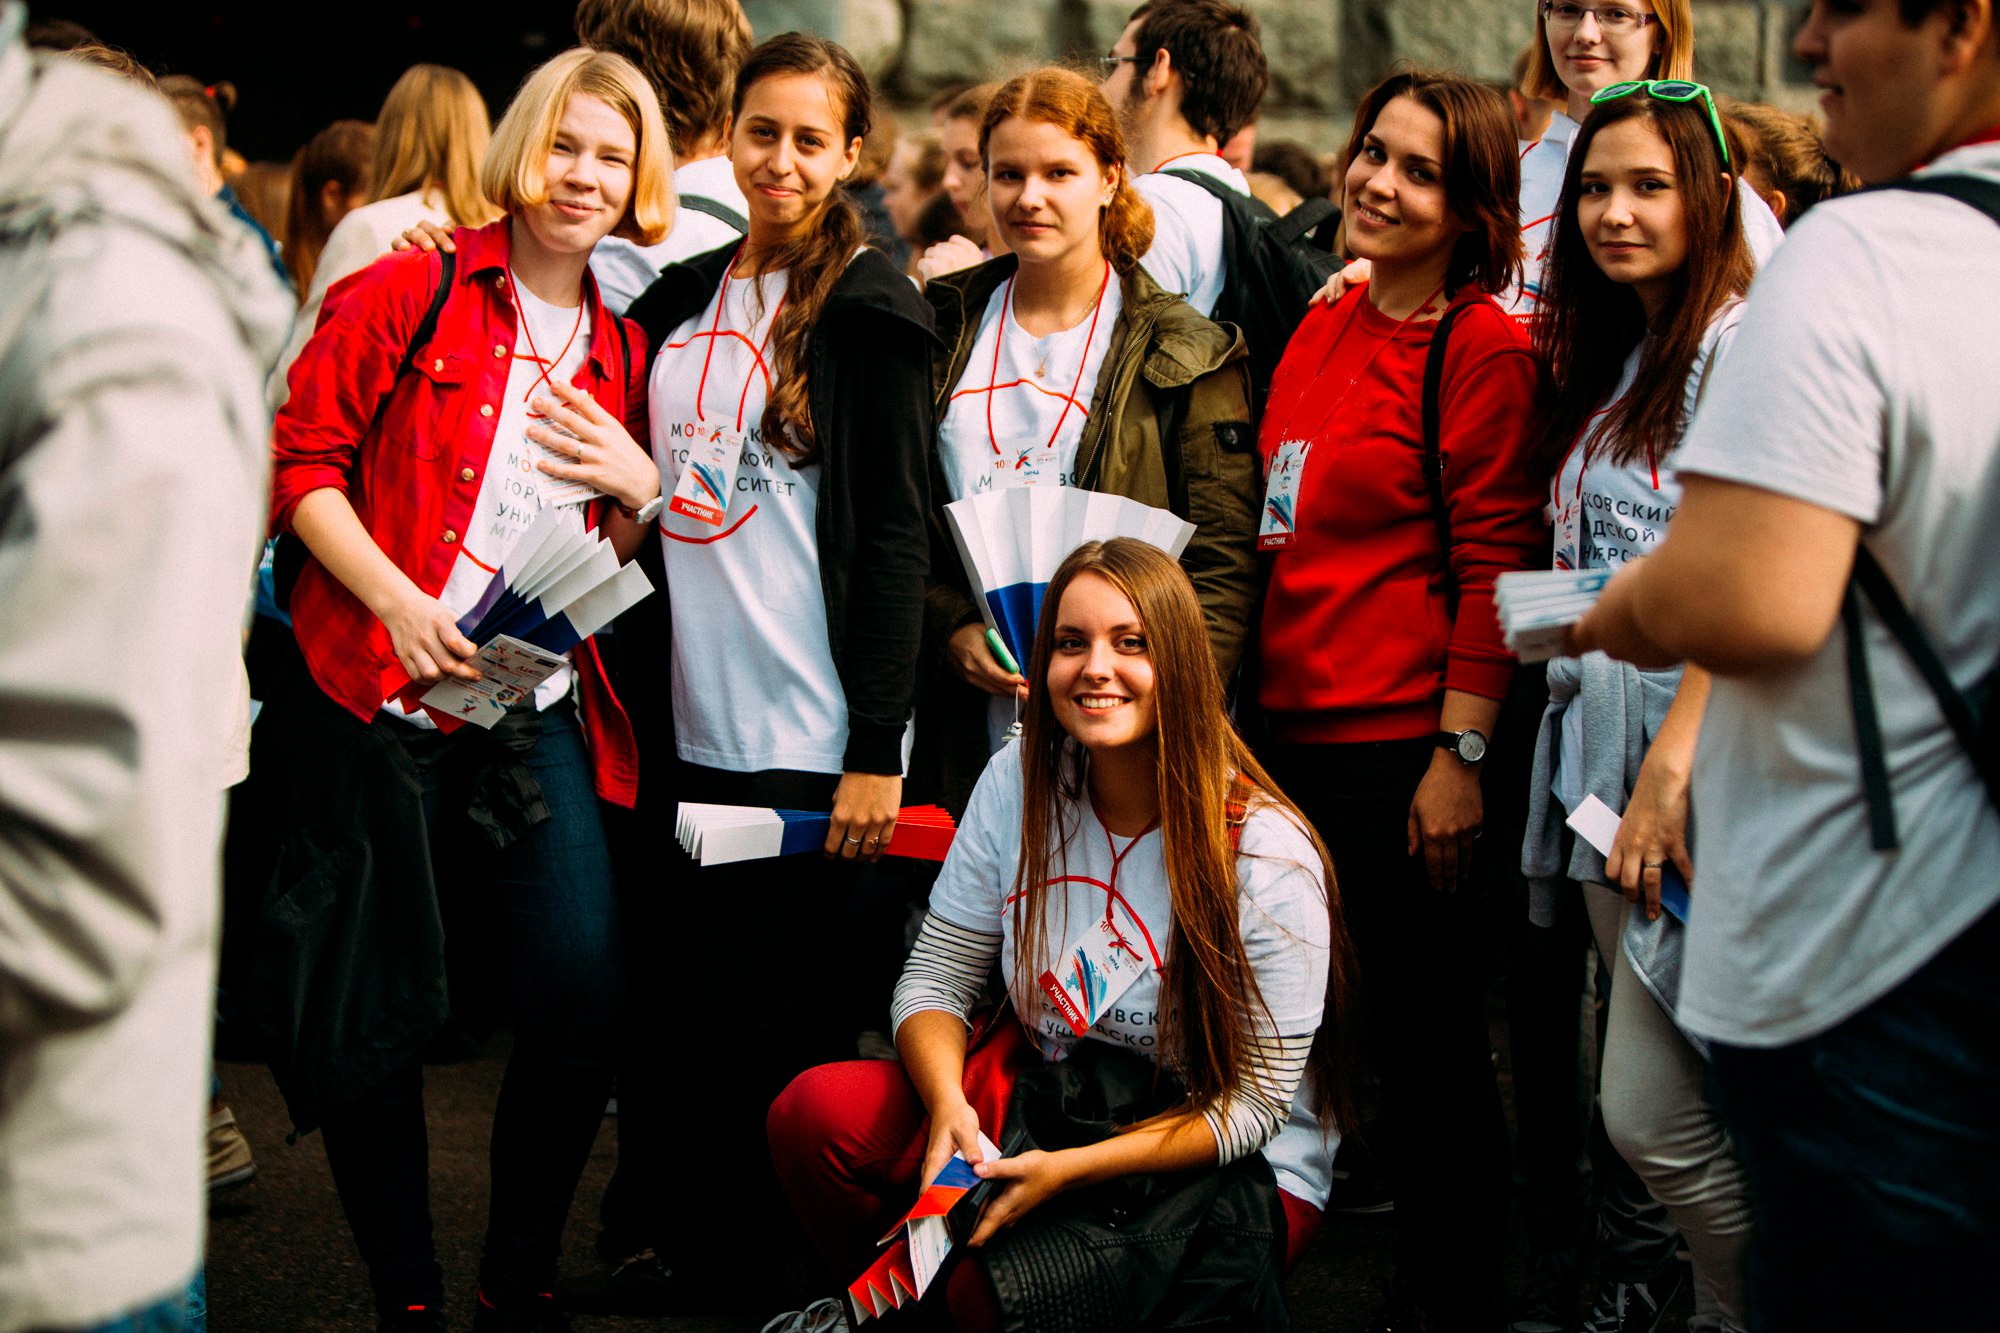 MCU at the Moscow's Student Festival